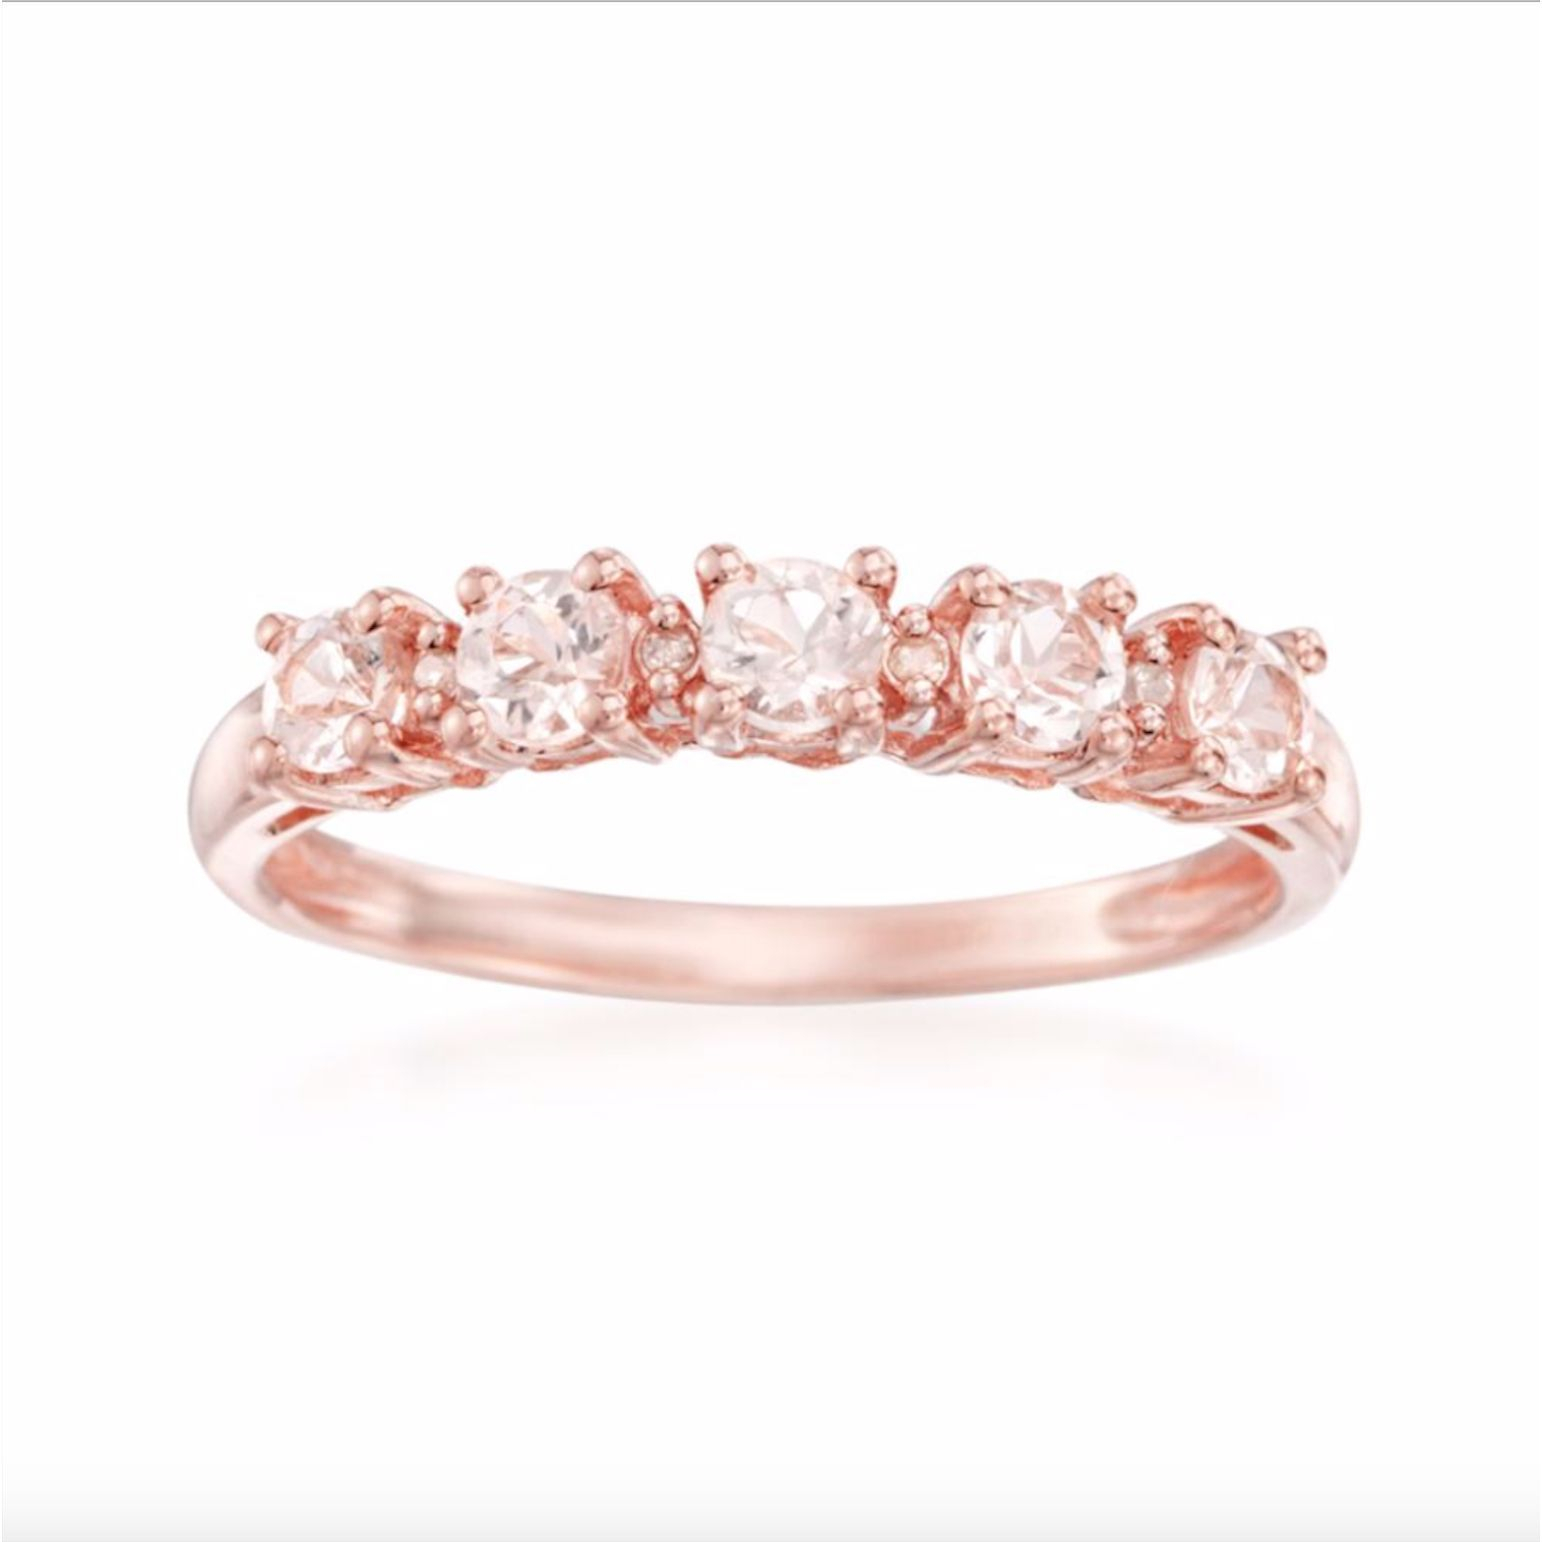 Five Sparkling Morganite Gemstones Are Set Along The Face Of The For Current Simple Sparkling Band Rings (Gallery 16 of 25)